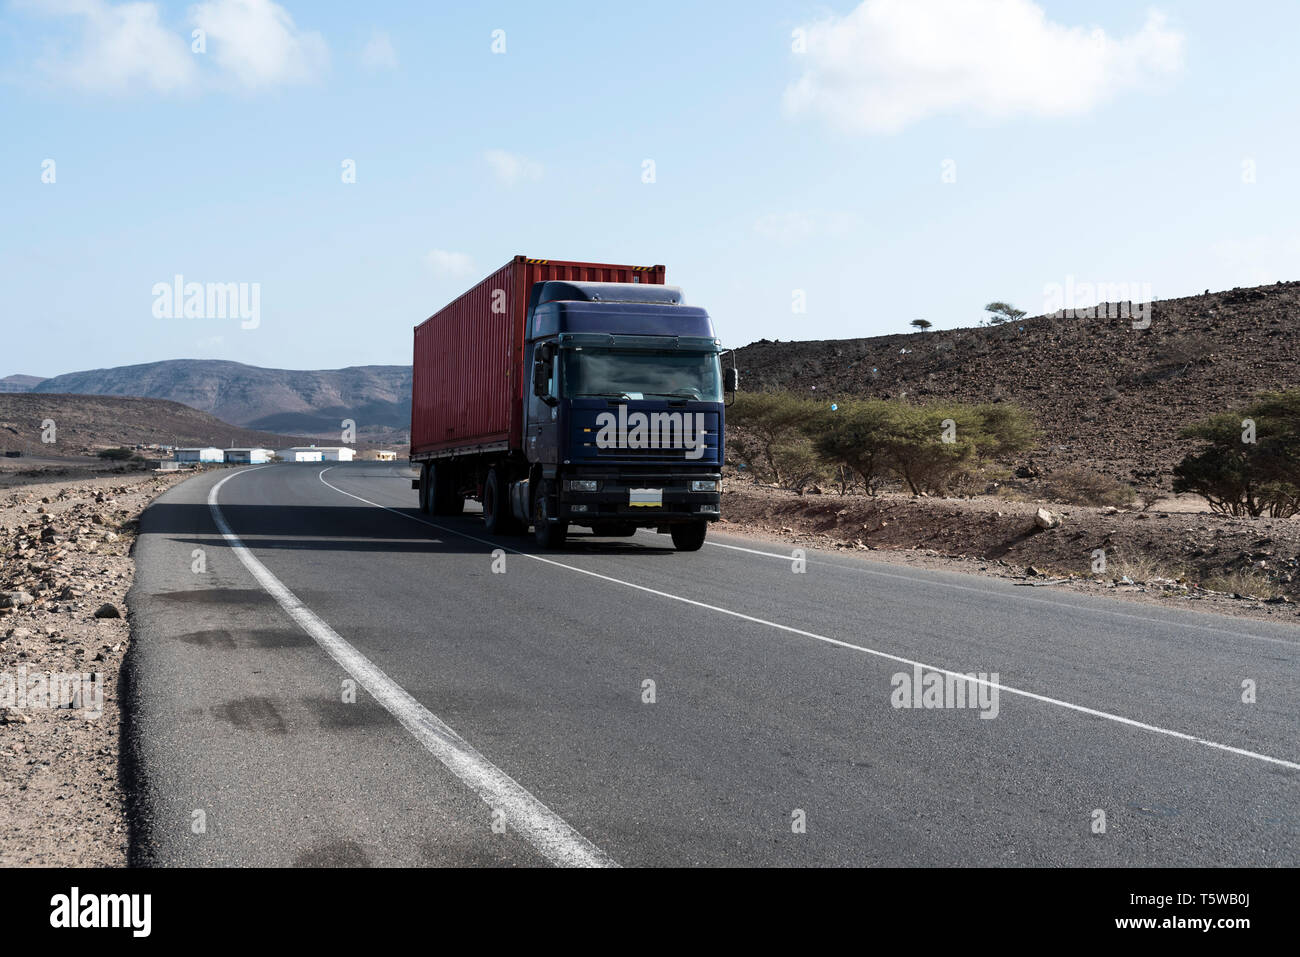 Container truck on Djibouti National Highway - Stock Image